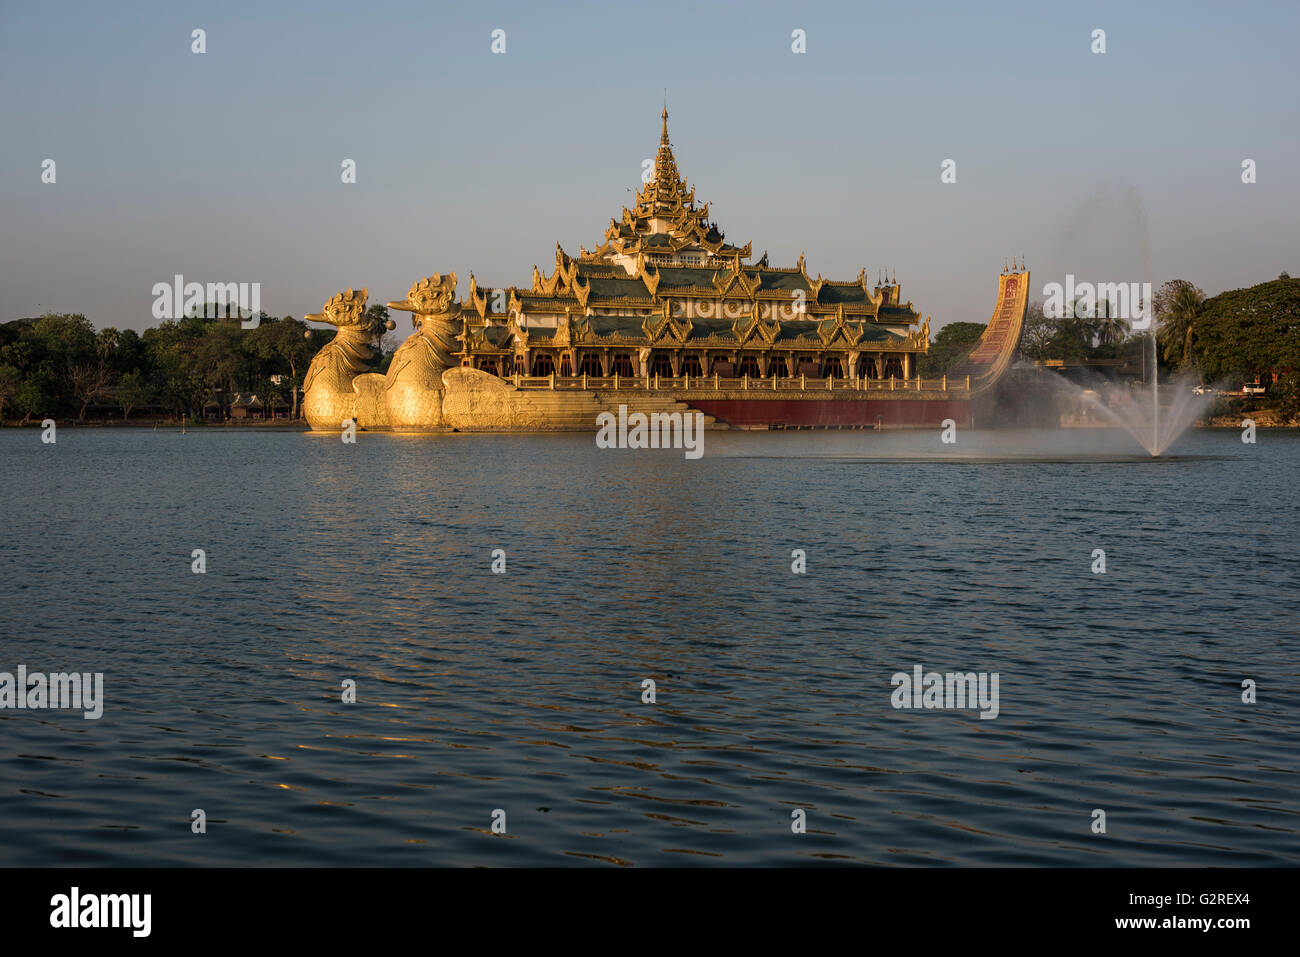 Karaweik Hall floating restaurant at the Kandawgyi Lake, Yangon, Myanmar. Stock Photo